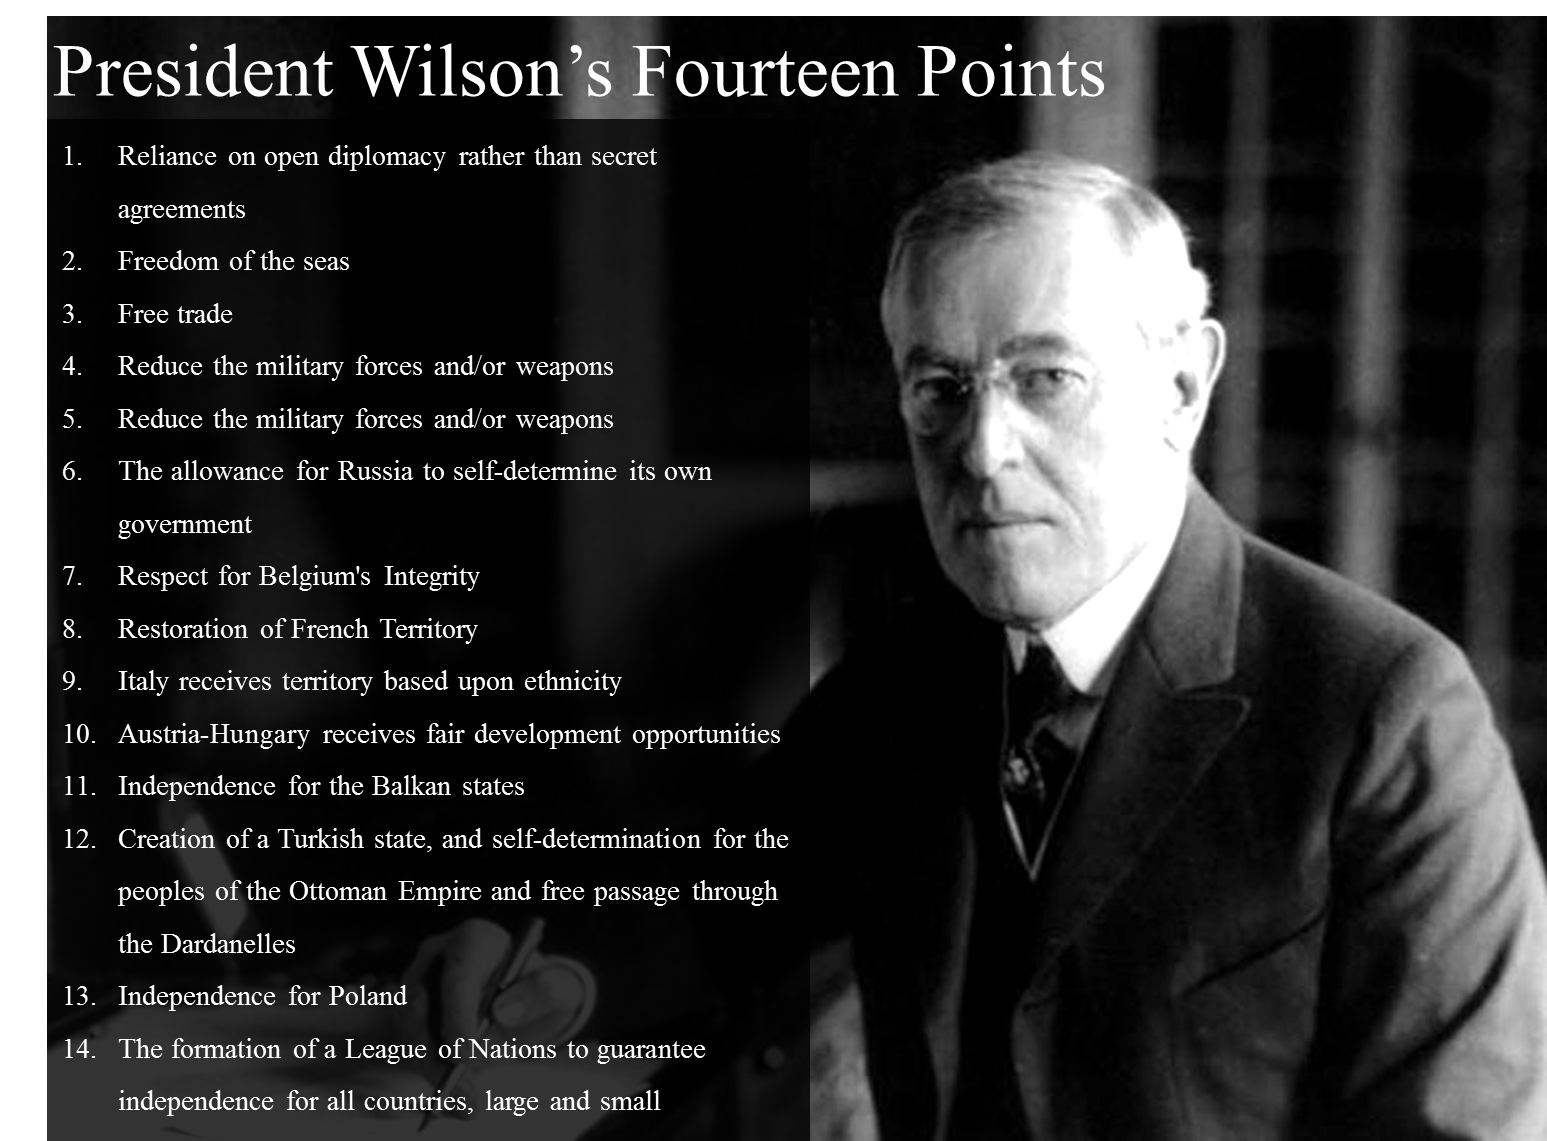 woodrow wilsons fourteen points essay In january 1918, woodrow wilson unveiled his fourteen points to the us congress the speech was a natural extension of the proposals he had offered in his peace without victory address and his request for a declaration of war.